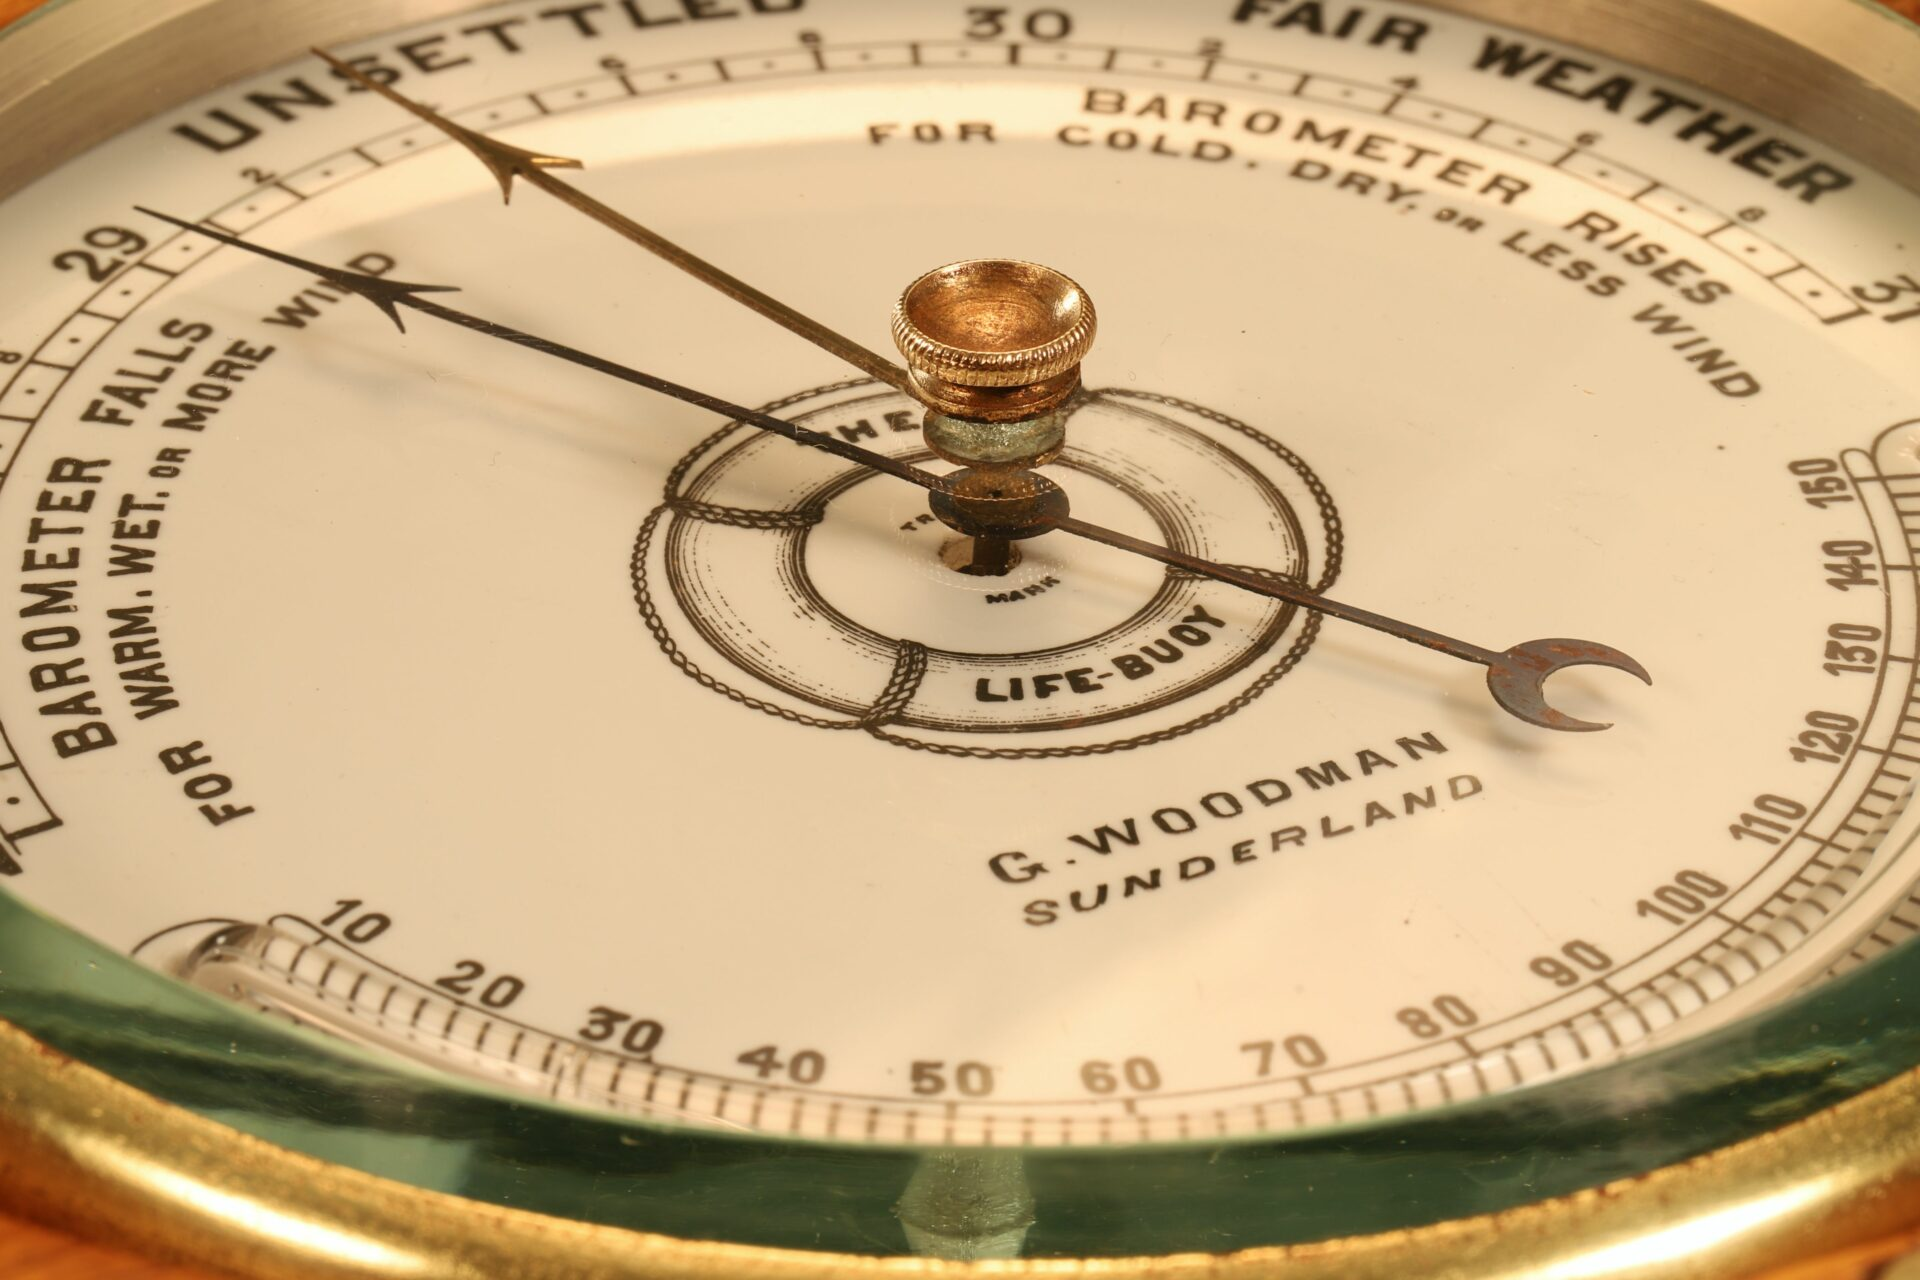 Image of dial of The Life-Buoy Barometer by Dollond c1885